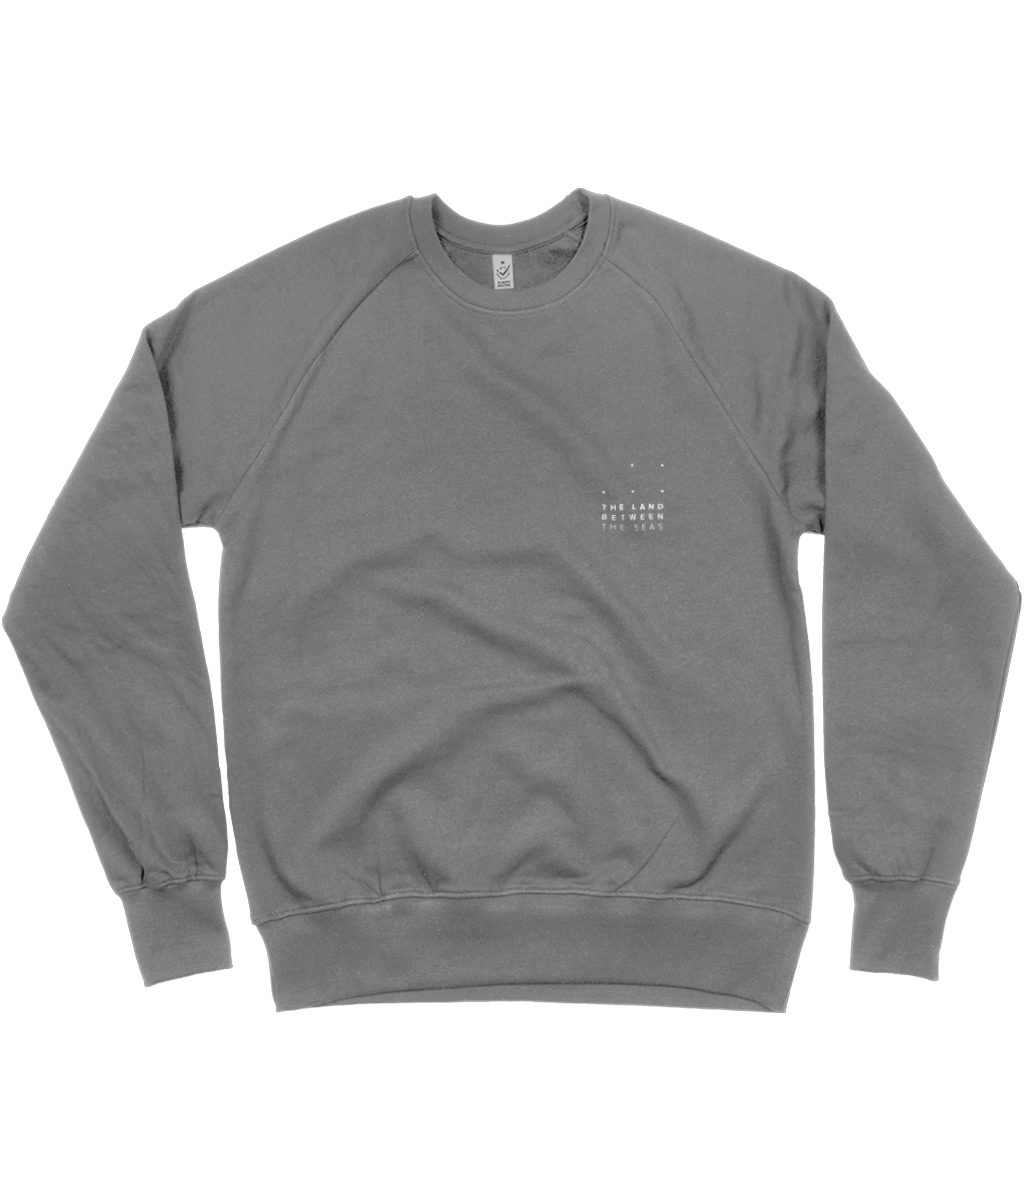 DOTS DARK GREY SWEATSHIRT